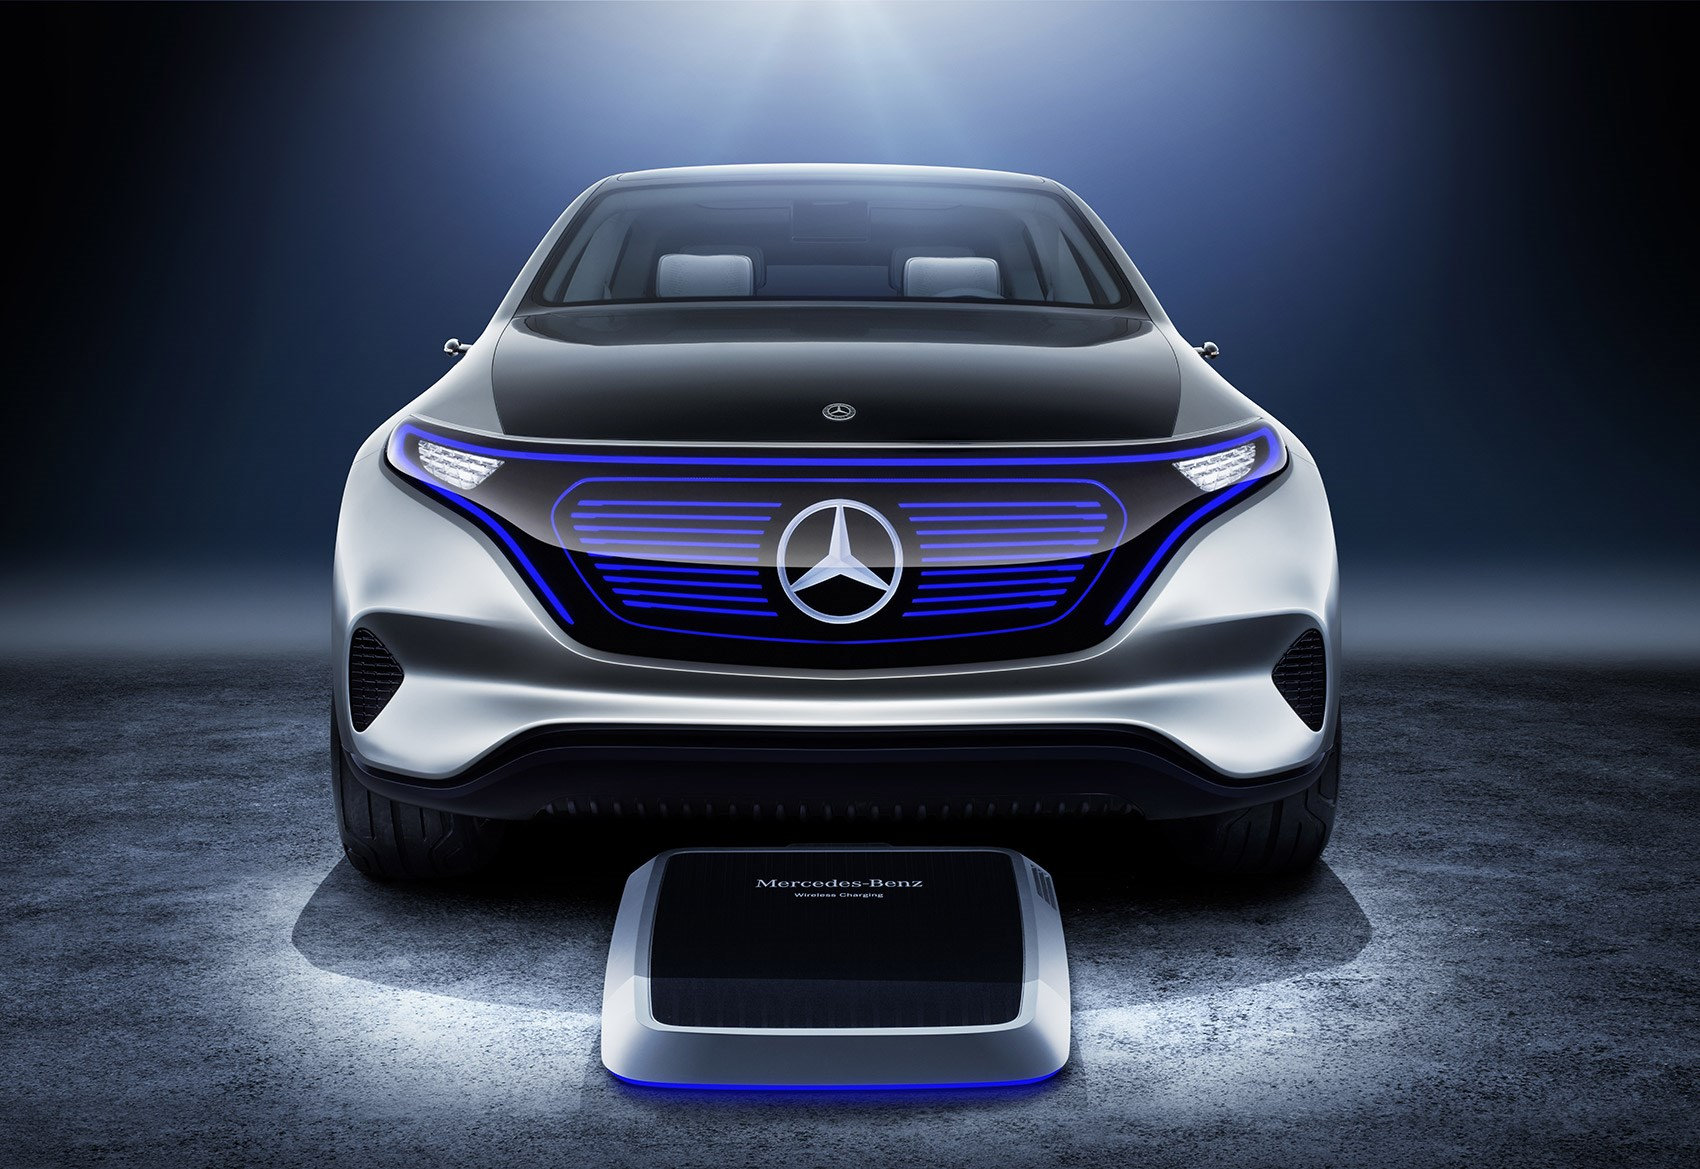 288371182364017479 likewise Mercedes Benz Eq 2018s New Electric Crossover Steps Out additionally Hd Desktop Technology Wallpaper Backgrounds For Download furthermore Cadillac Logo likewise Jic Standard Symbols For Electrical Ladder Diagrams. on electric automotive industry symbols